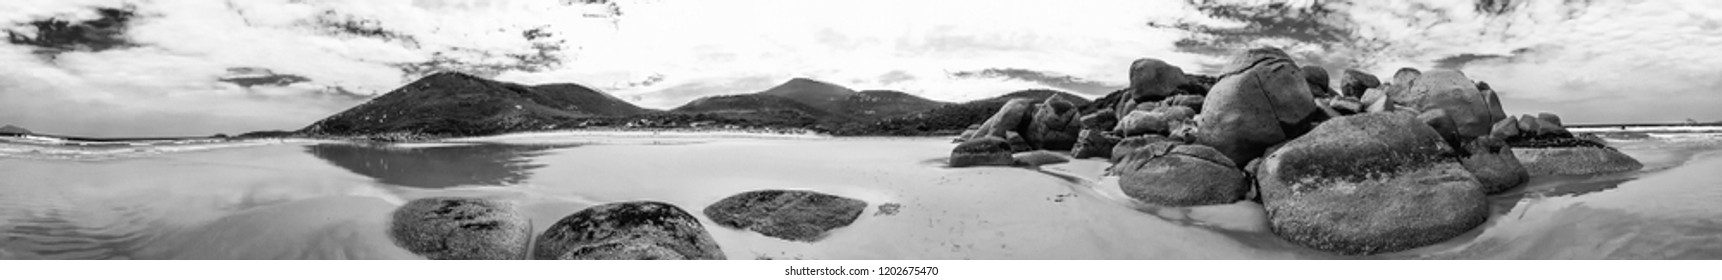 Whisky Bay panoramic view in Wilsons Promontory Marine Park, Australia.